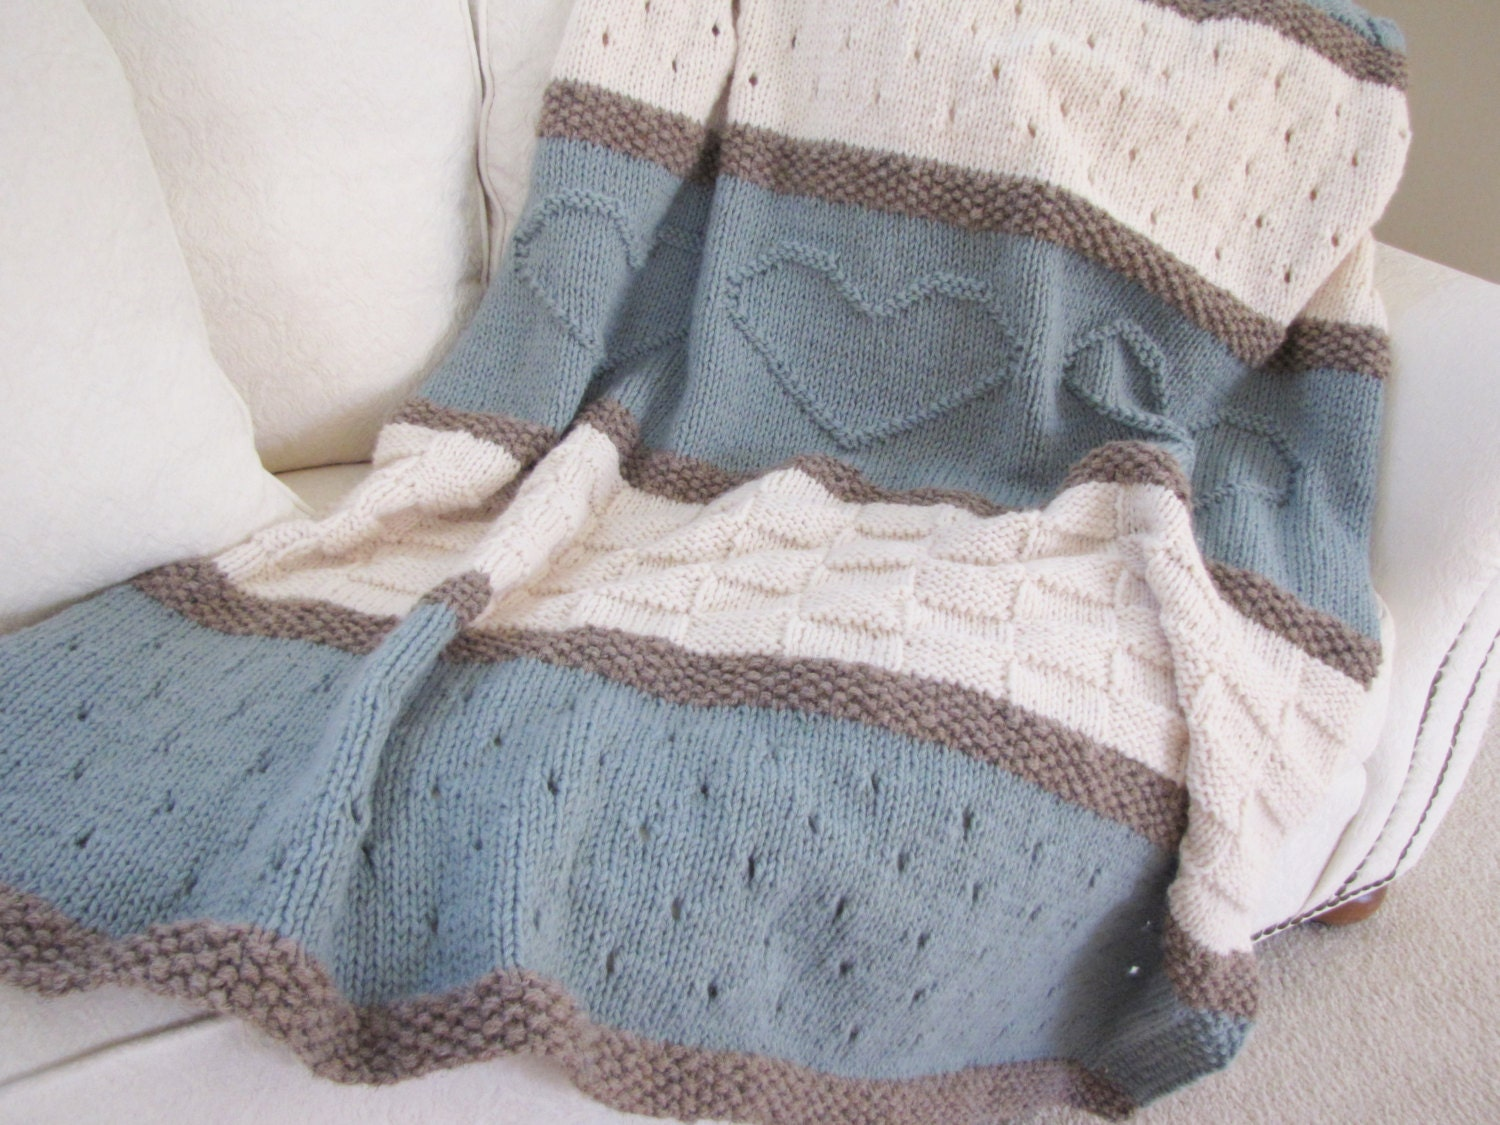 Knitting Pattern For A Throw Blanket : Knit Blanket Pattern Knit Throw Pattern Knit Heart Blanket